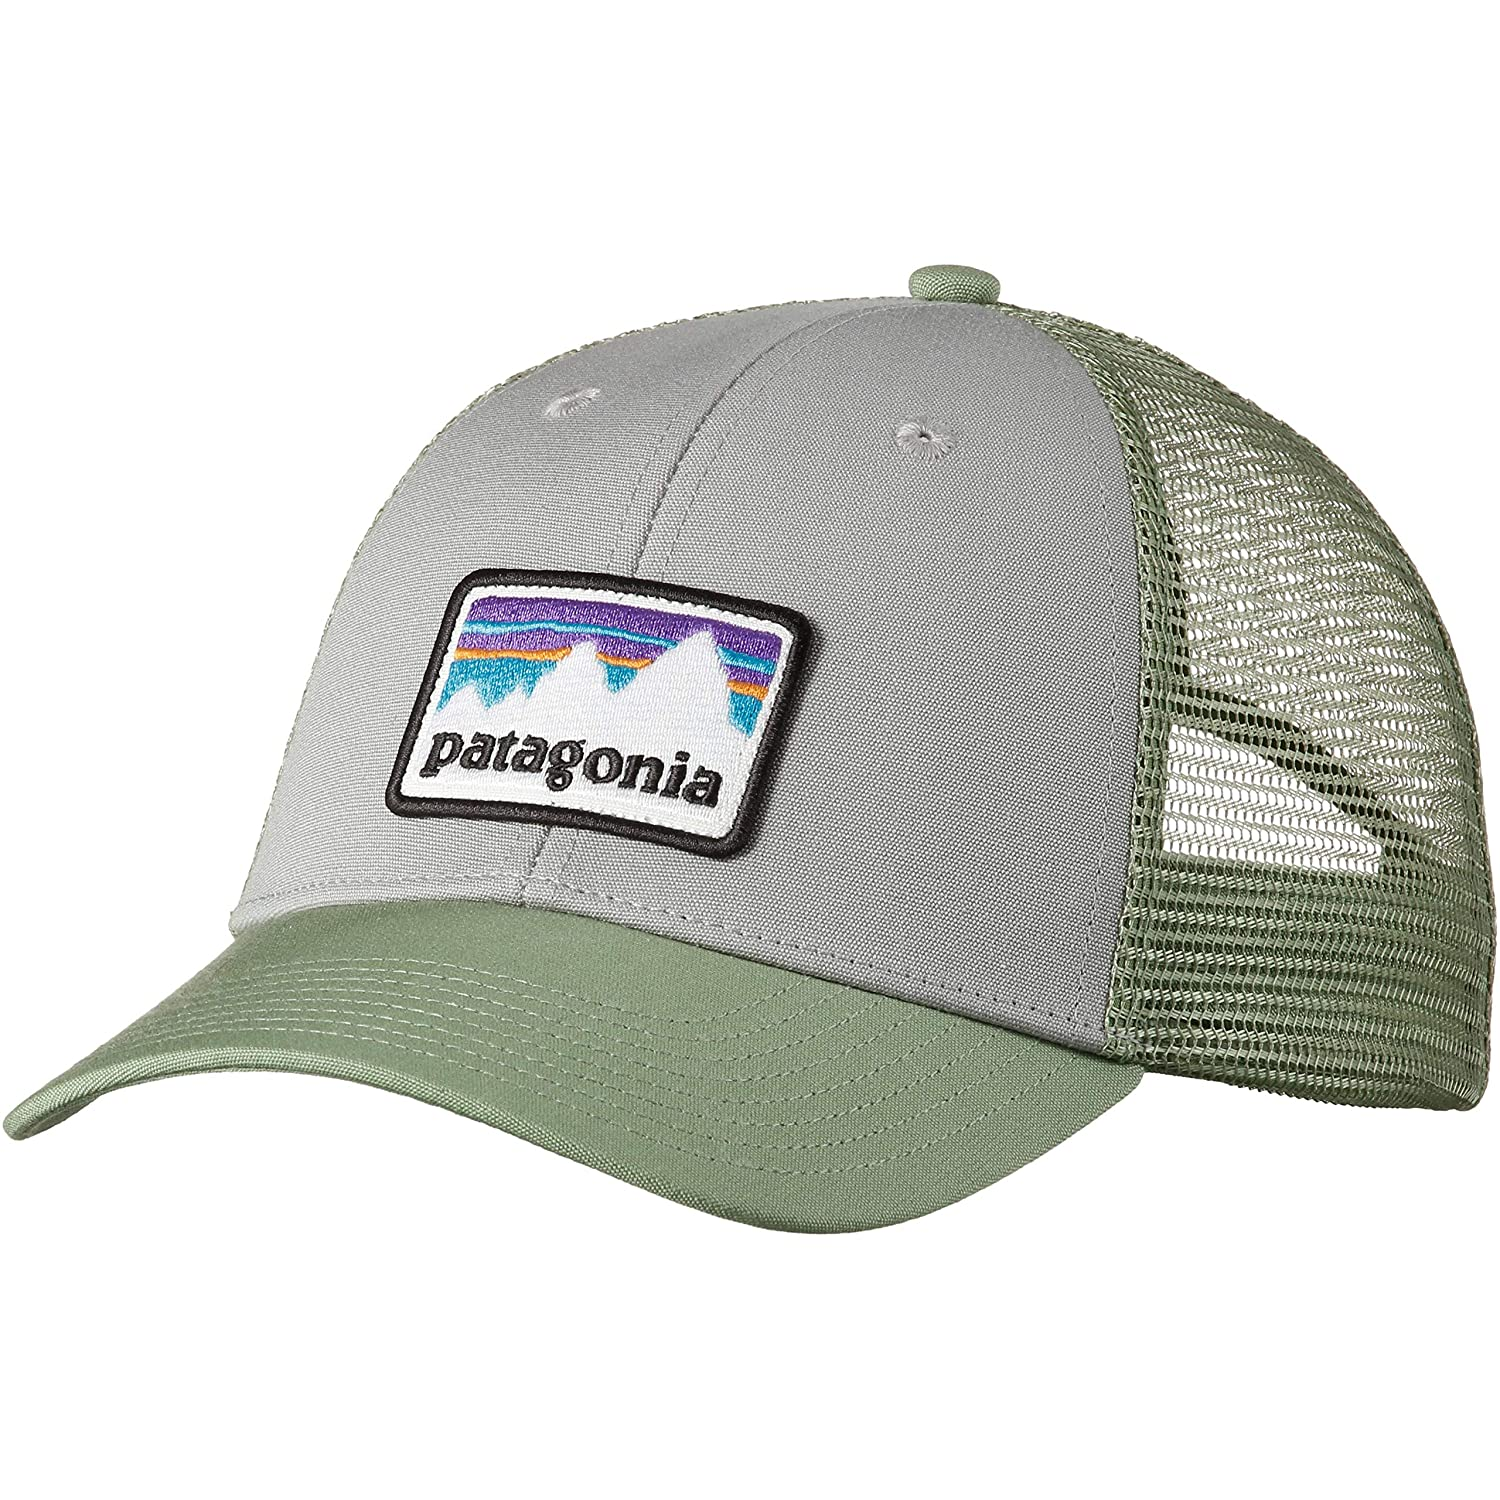 Patagonia Shop Sticker Patch LoPro Trucker Hat Gorra 30cc481420a